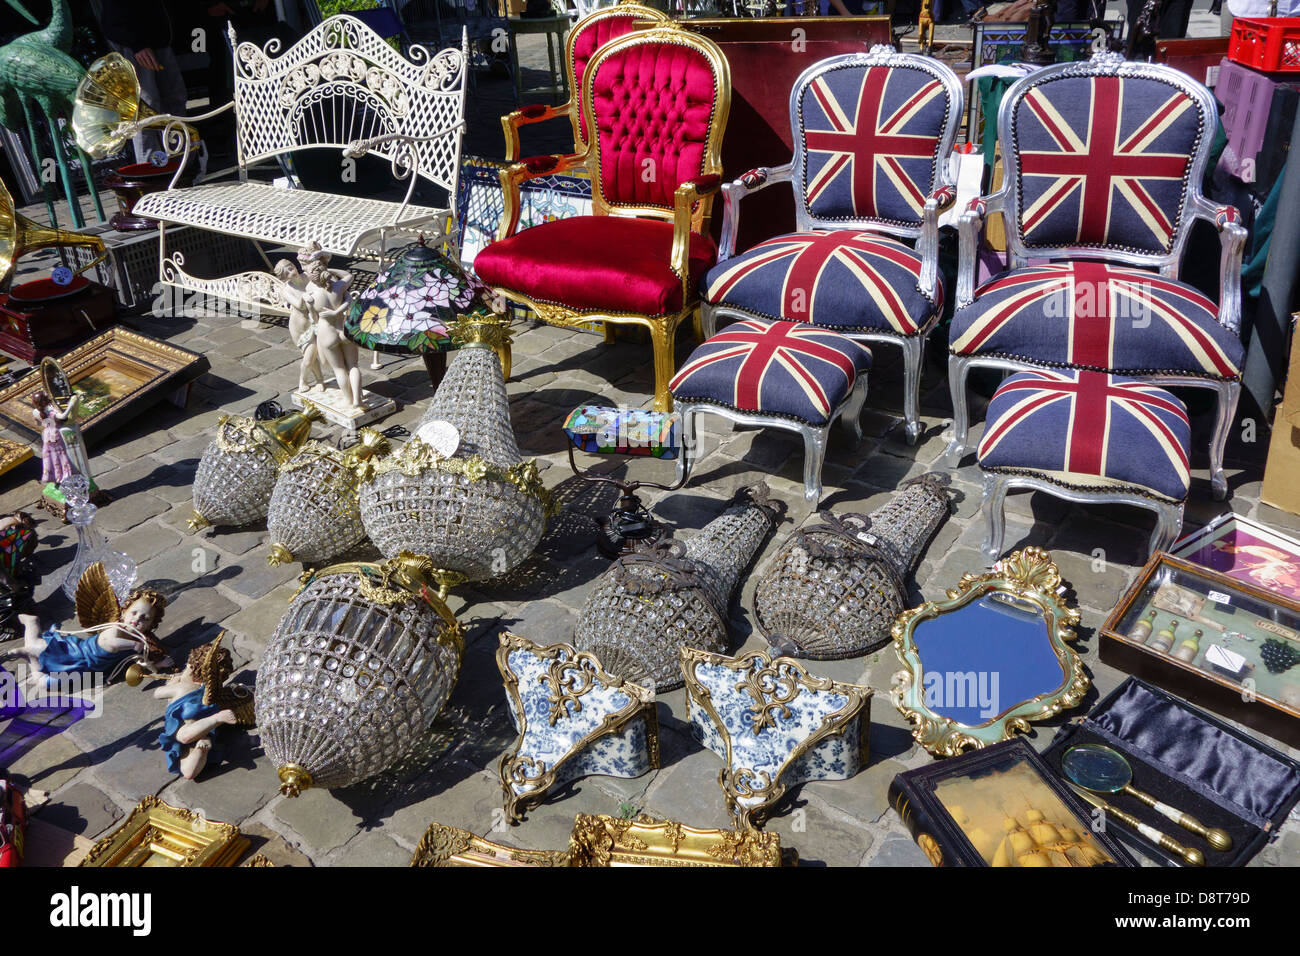 British chairs, bric-a-brac, antiques and secondhand used goods for sale at flea market in town in summer - Stock Image